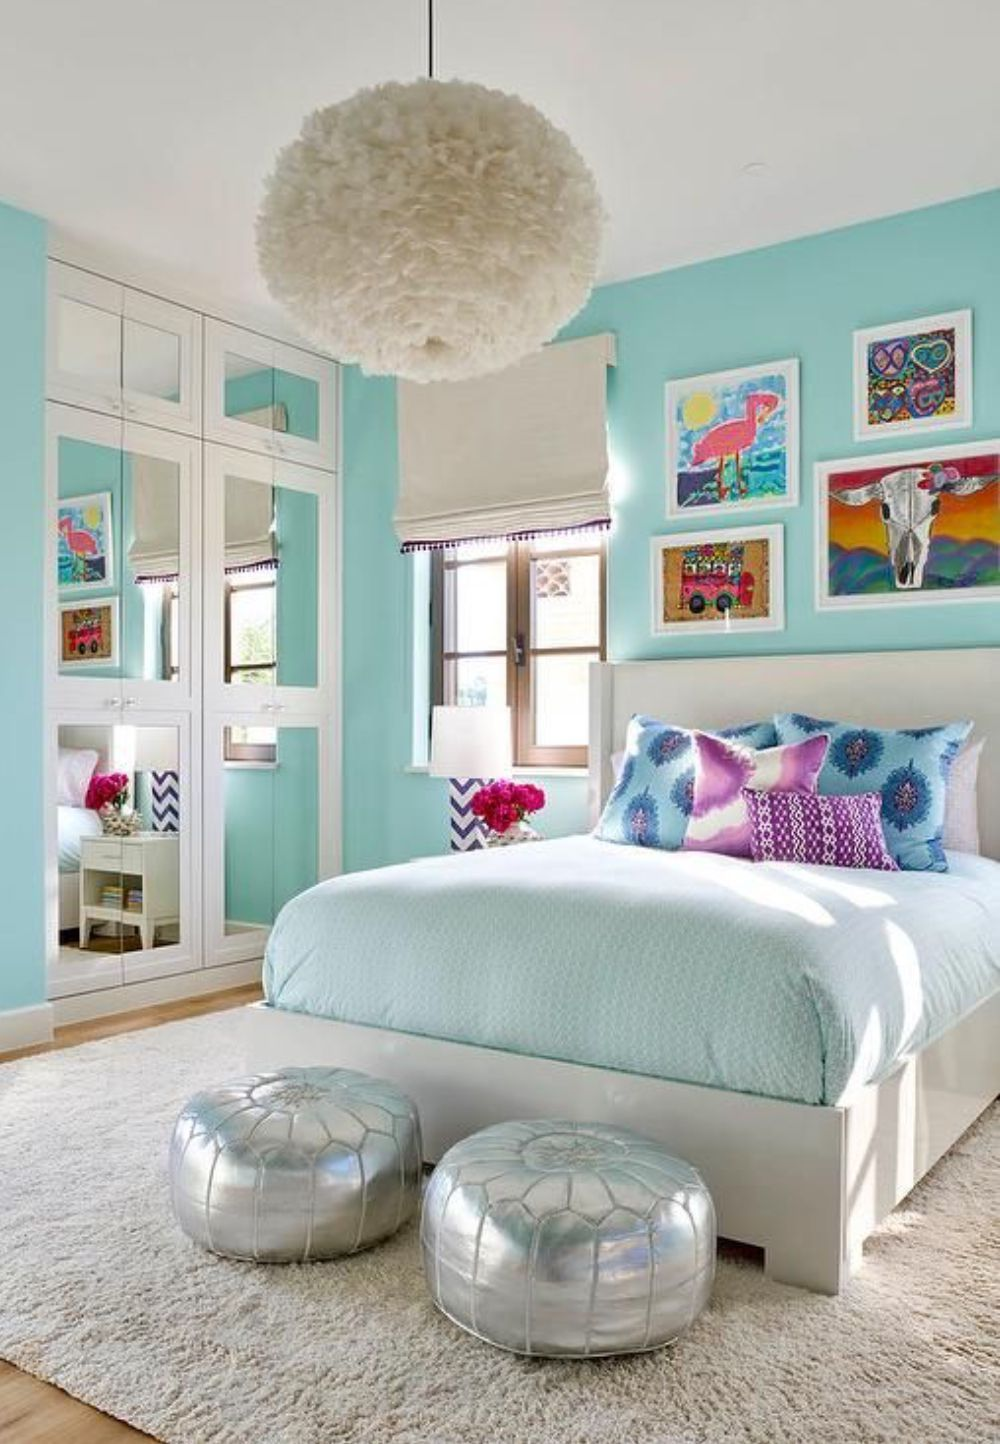 Wrong Number Bedroom Colors Blue Bedroom Turquoise Room